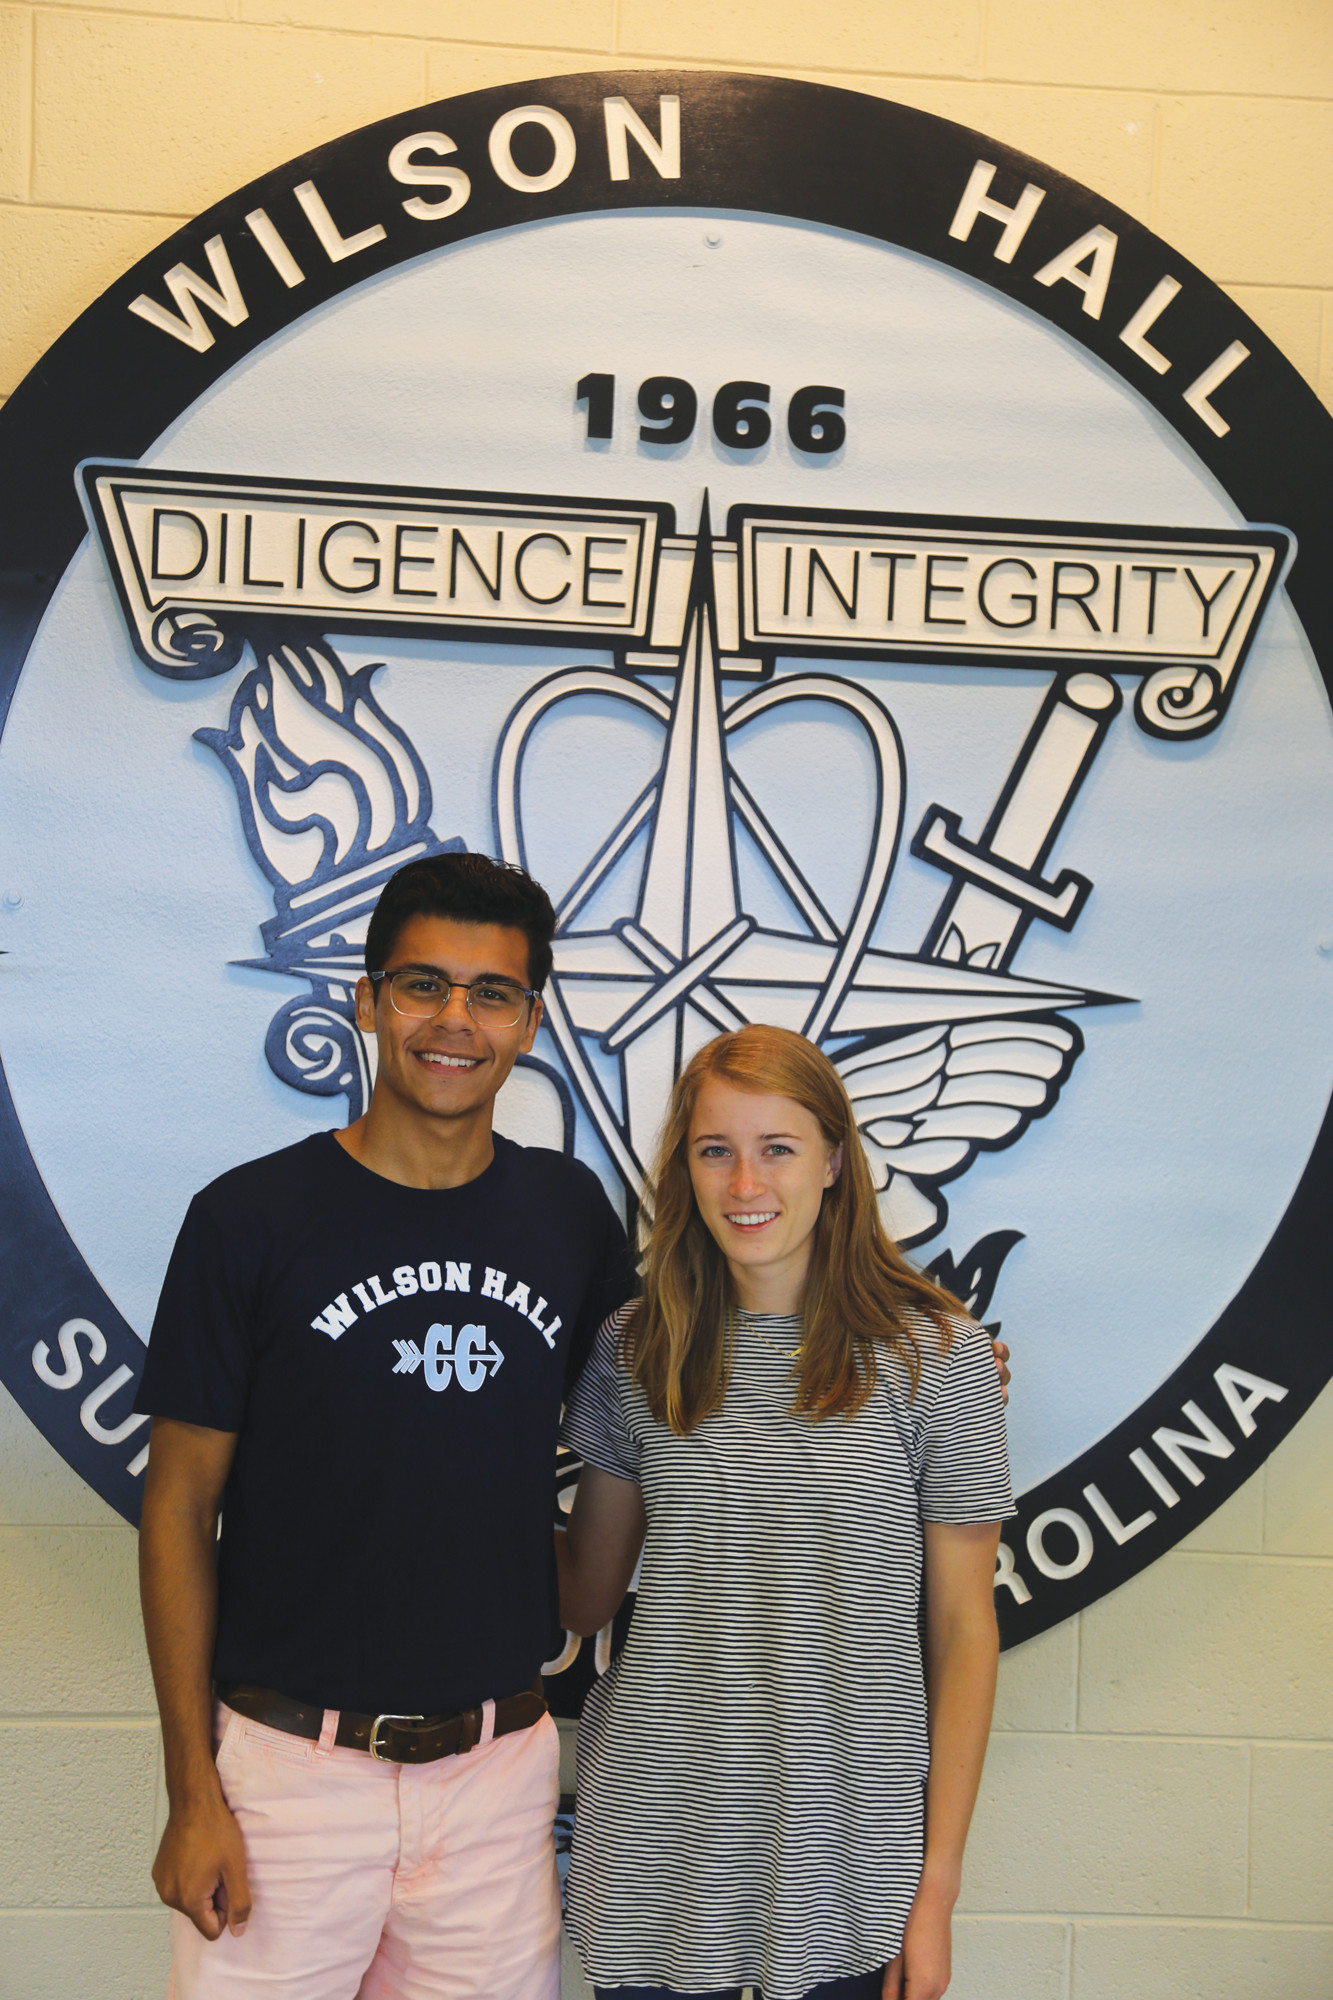 Wilson Hall seniors Matthew Tavarez, left, and Kirsten Fisher were recently selected as National Merit Scholarship semifinalists.